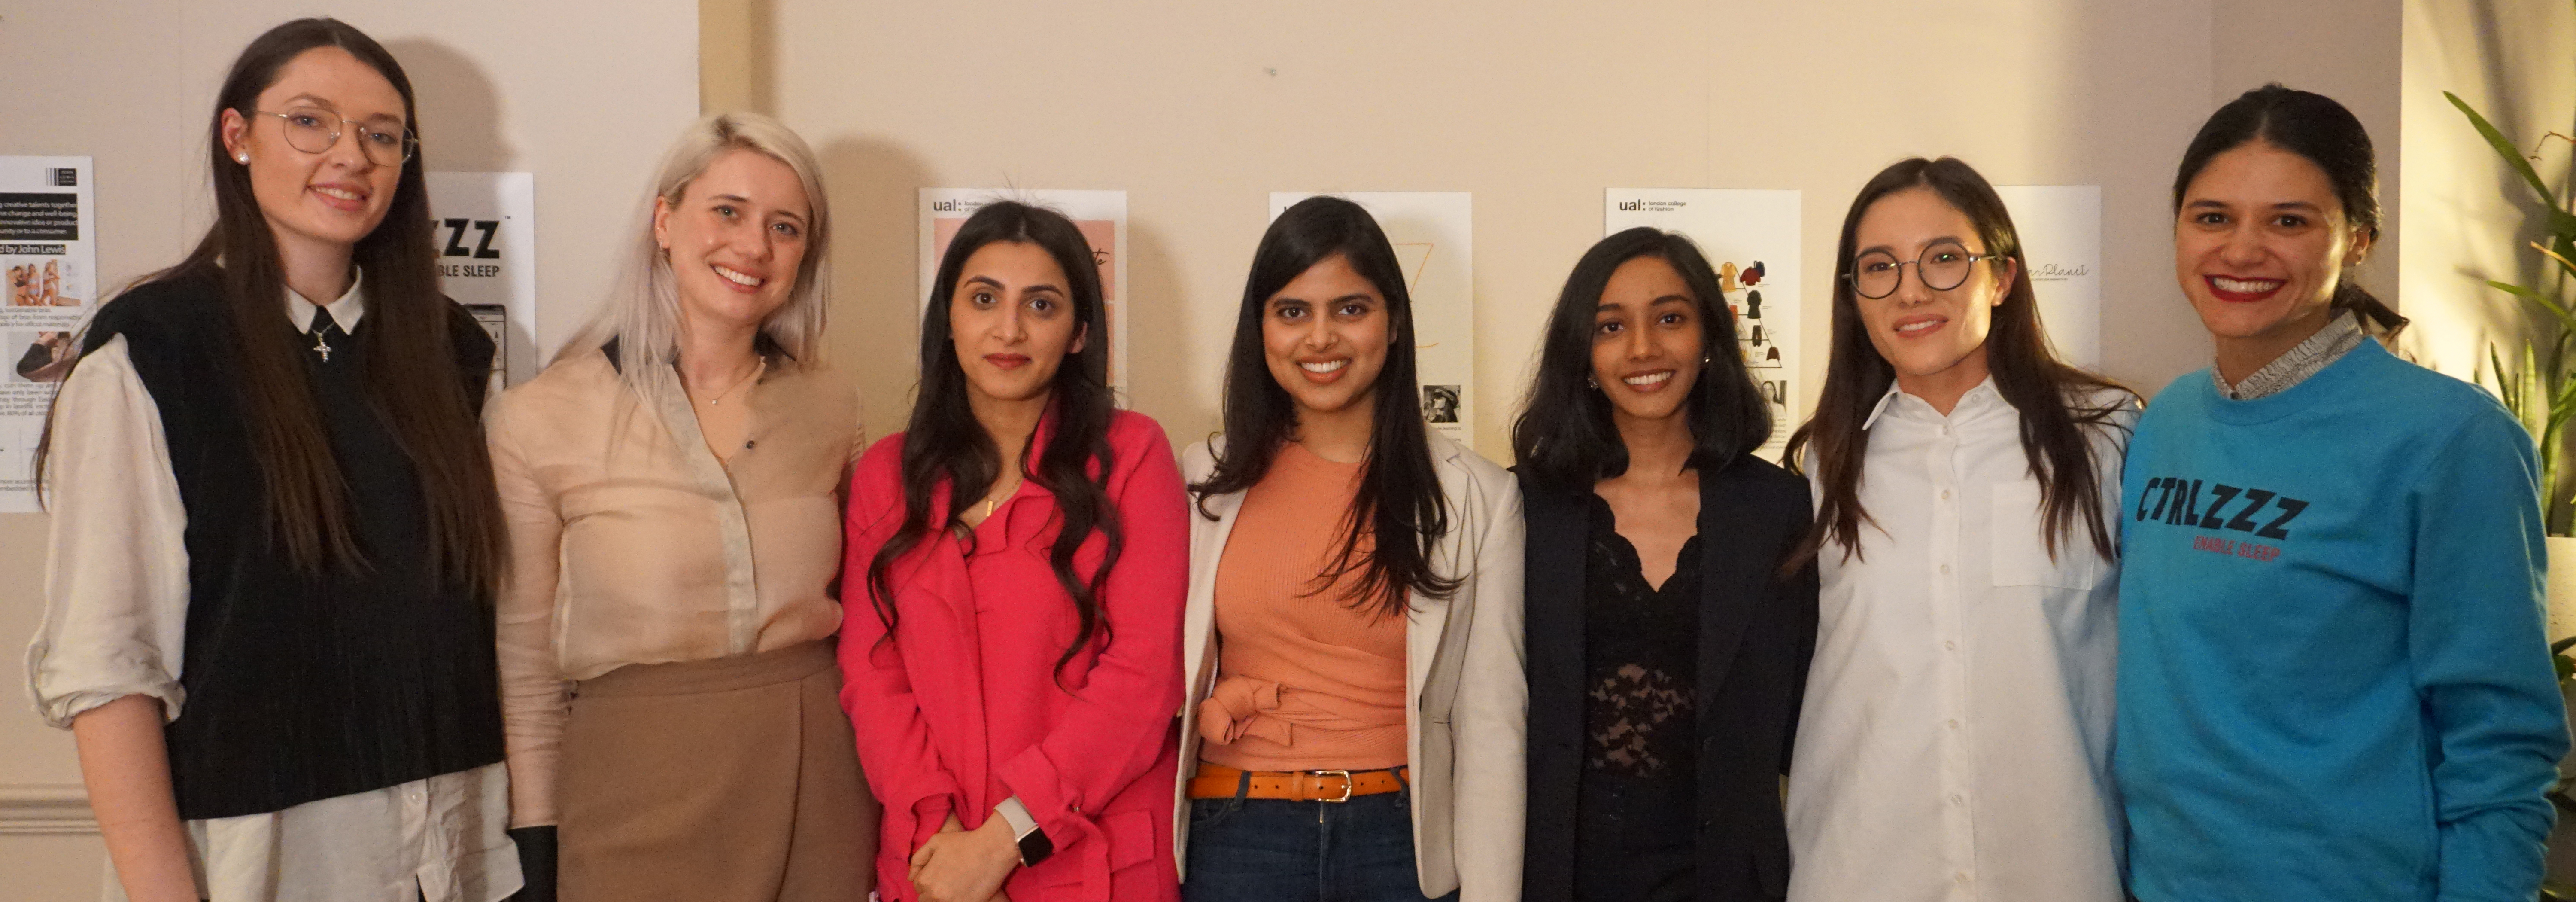 Finalists of the Enterprise Challenge posing with their prizes at John Lewis in Oxford Street, where the event took place